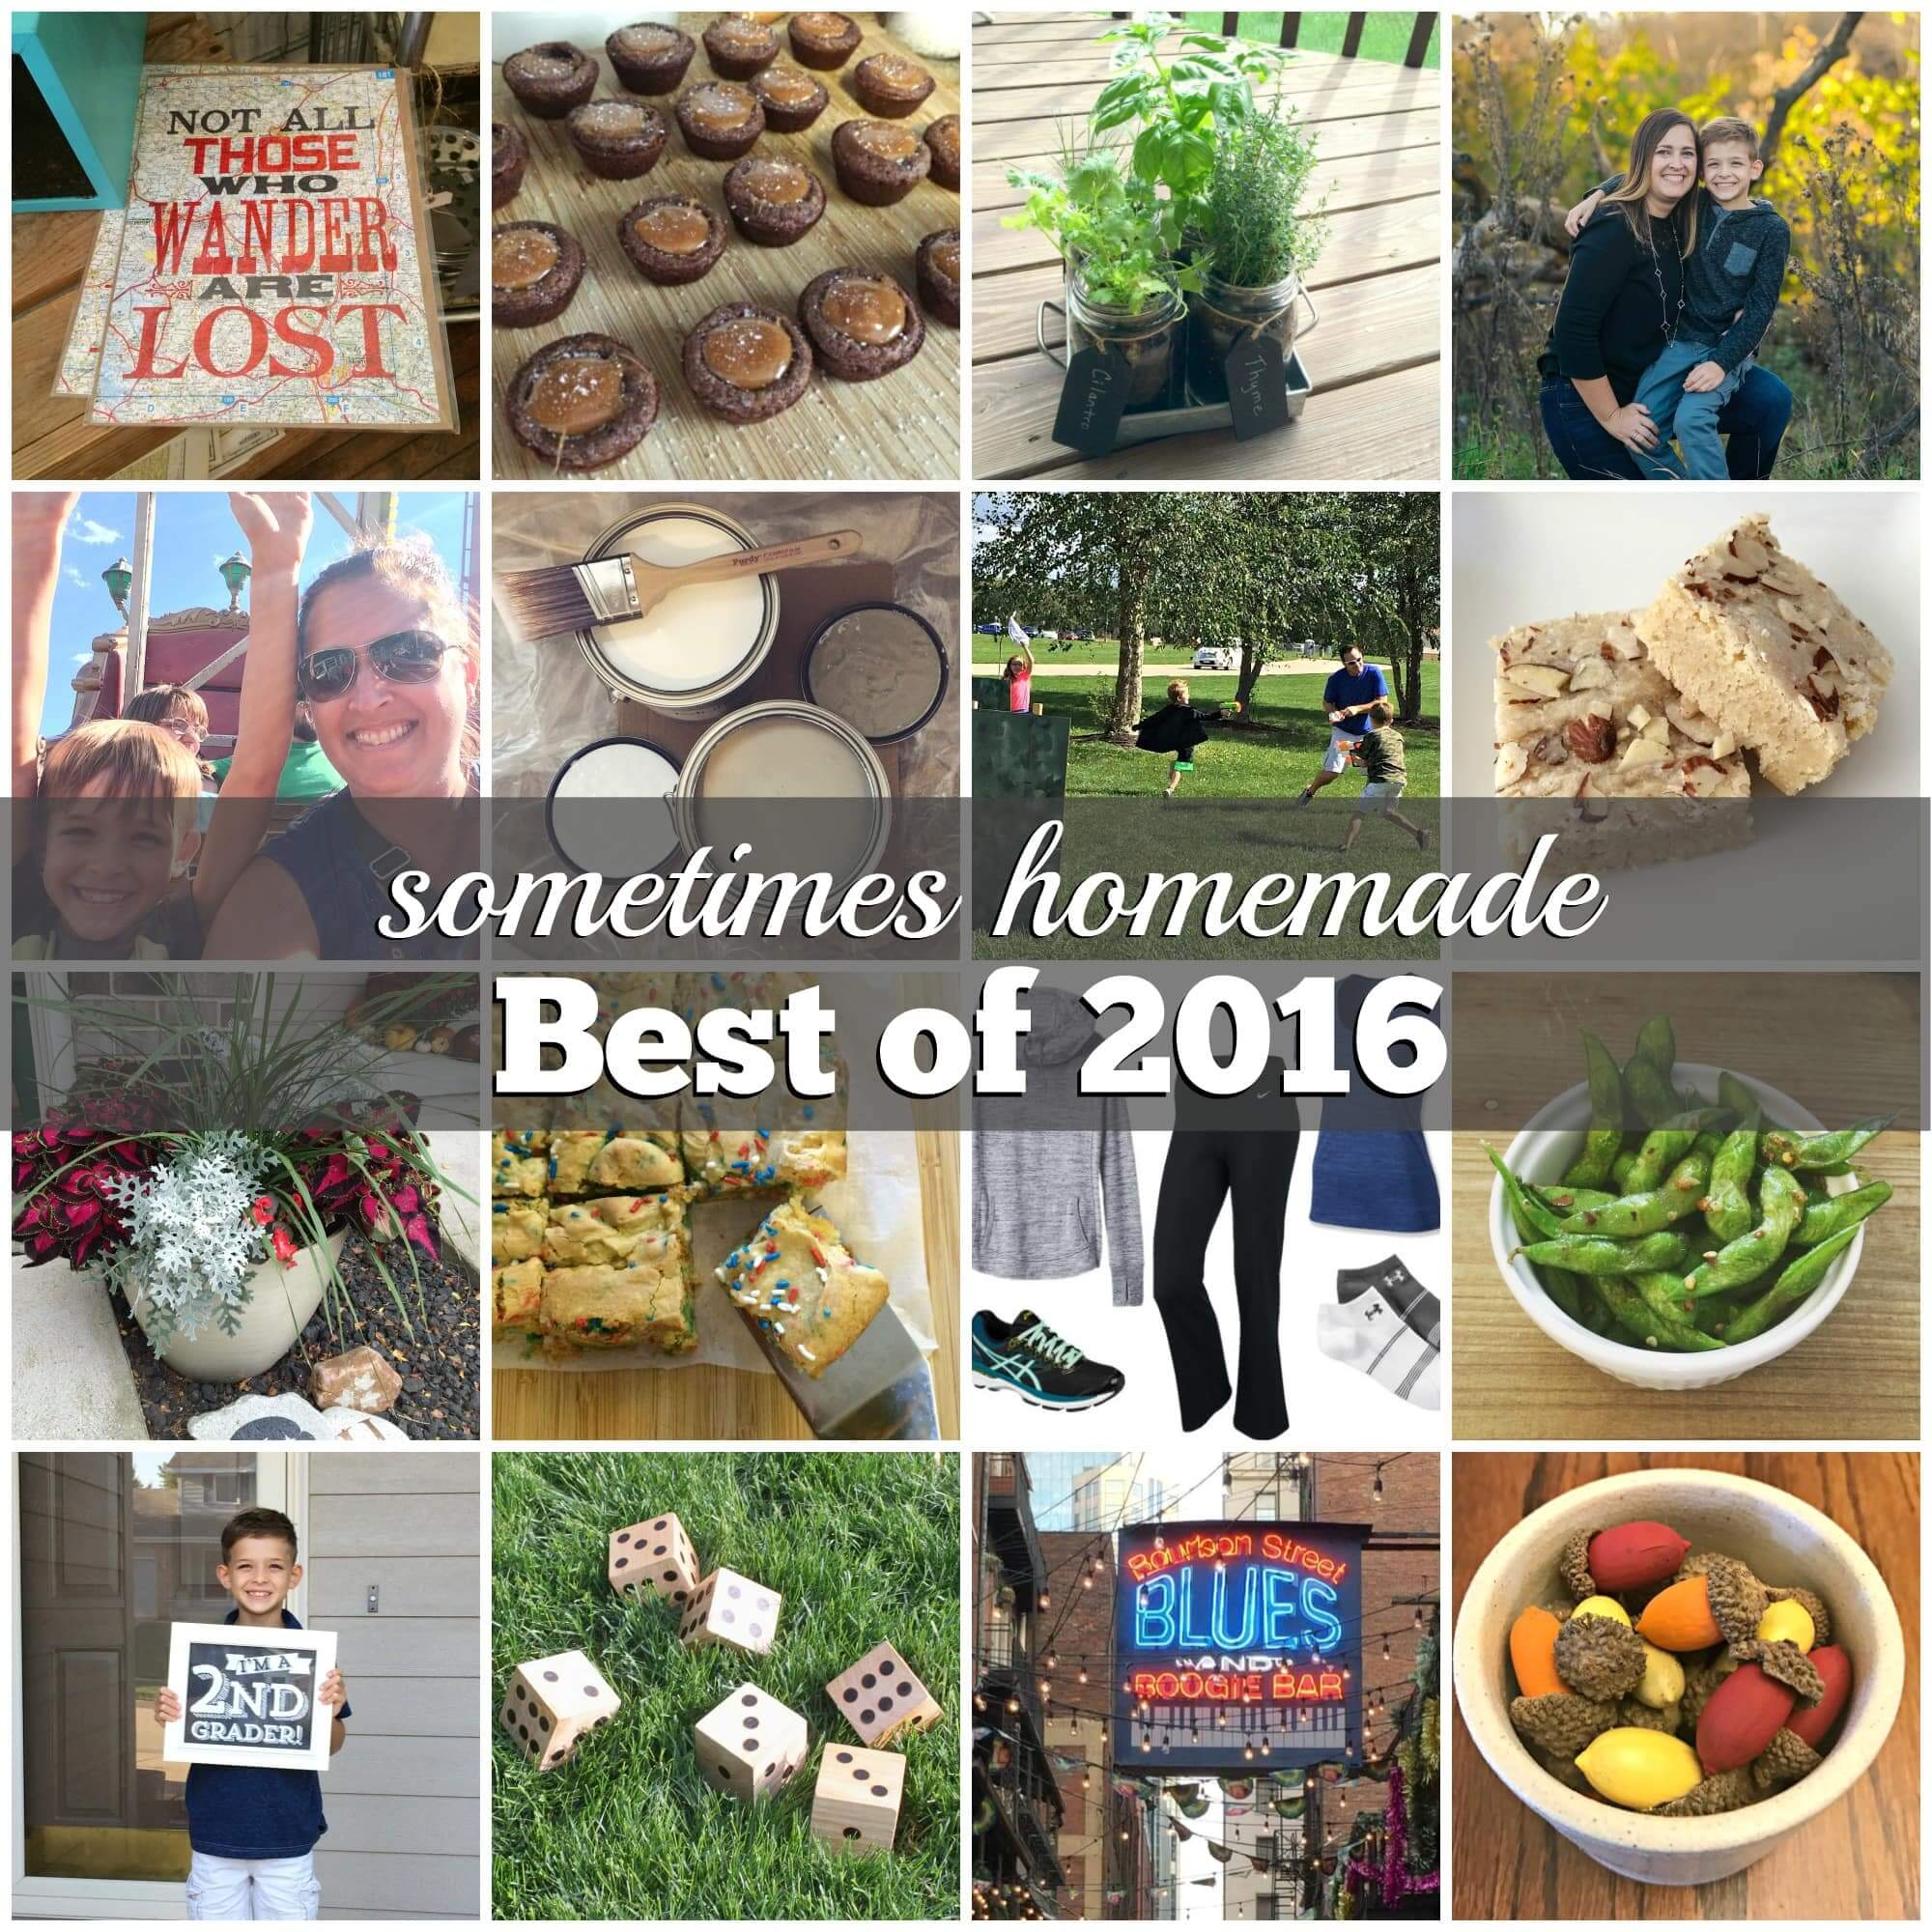 Sometimes Homemade - Best of 2016 - Top 10 posts of the year including salted caramel brownie bites, best outdoor games, ideas for an ultimate Nerf birthday, and more!